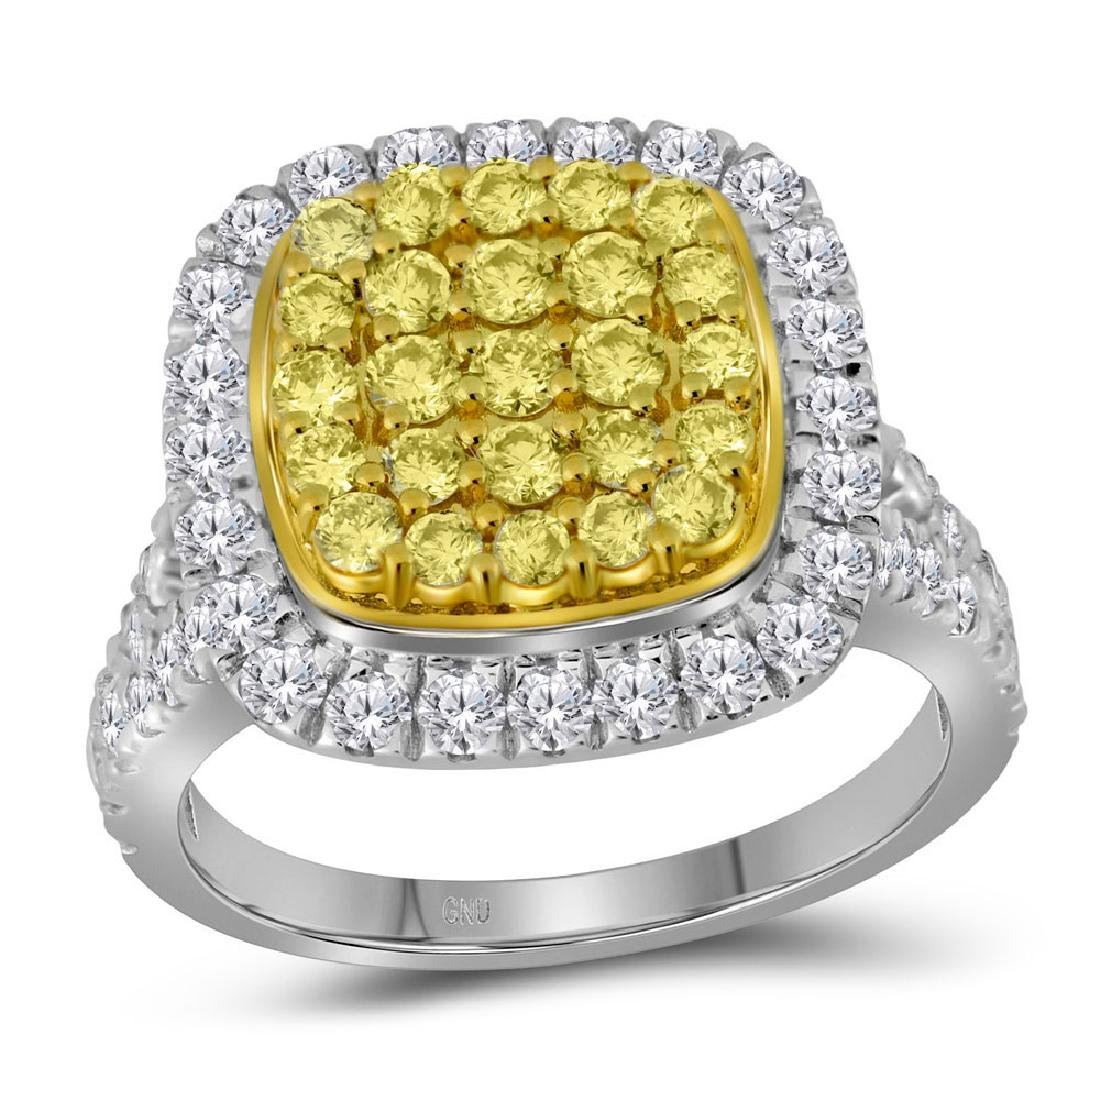 1.75 CTW Natural Yellow Diamond Cluster Ring 14KT White